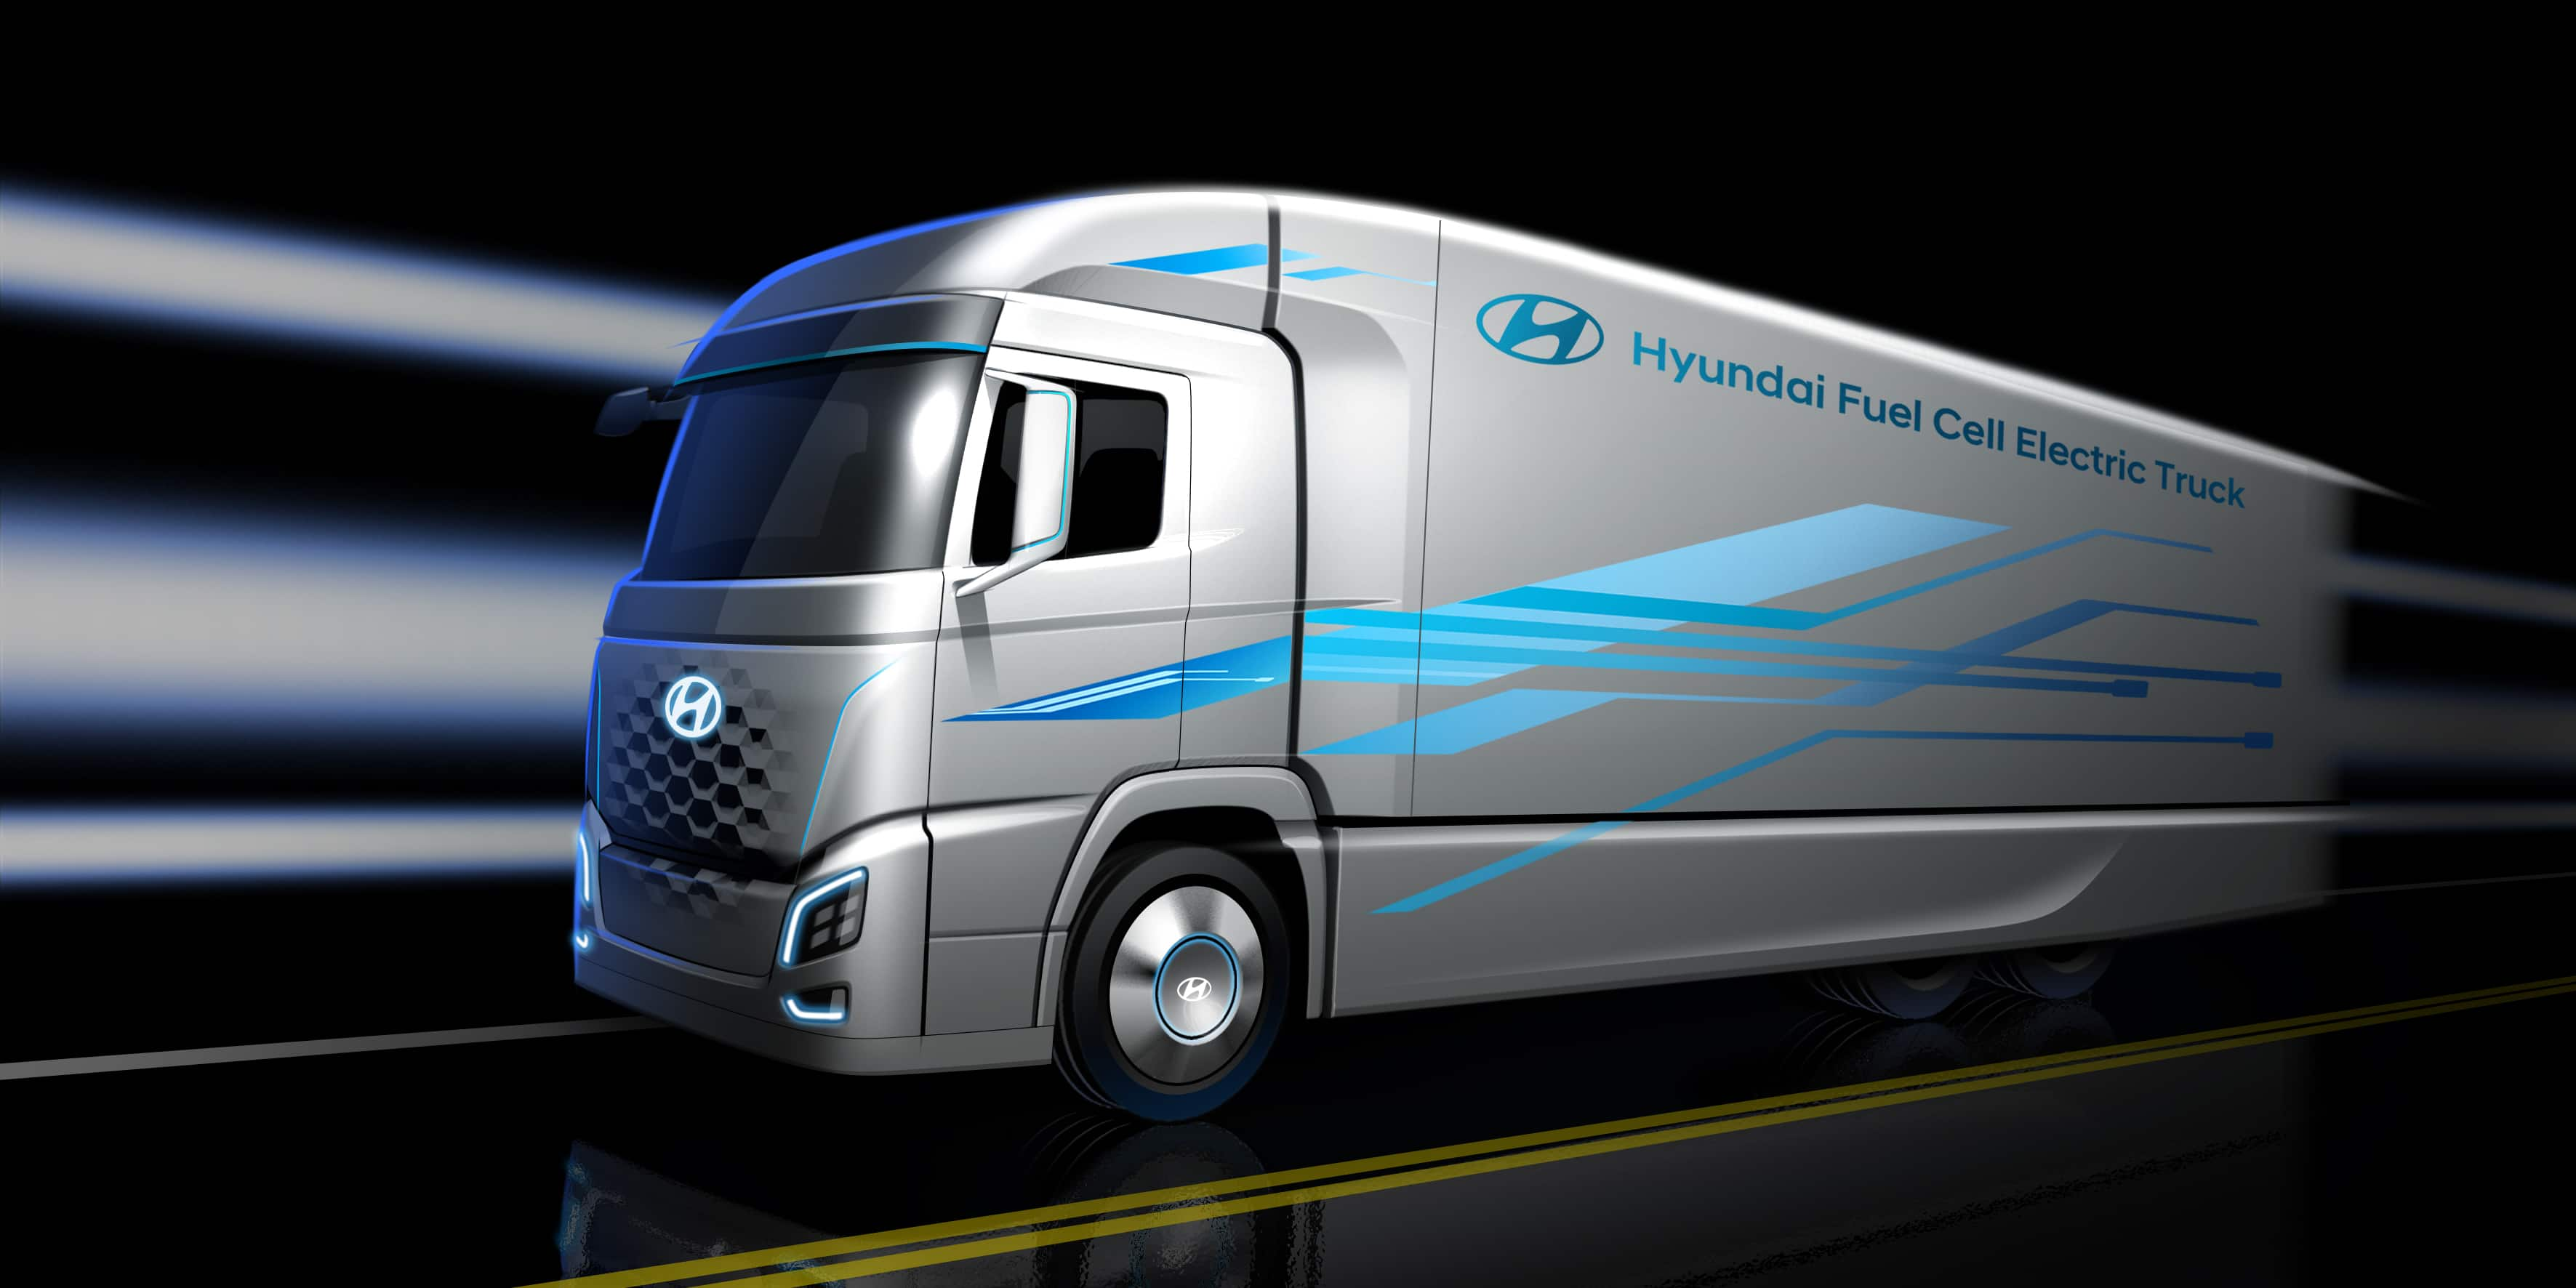 Hyundai Motor Presents First Look at New Truck with a Fuel Cell Powertrain, Ahead of IAA Commercial Vehicles 2018 Announcement